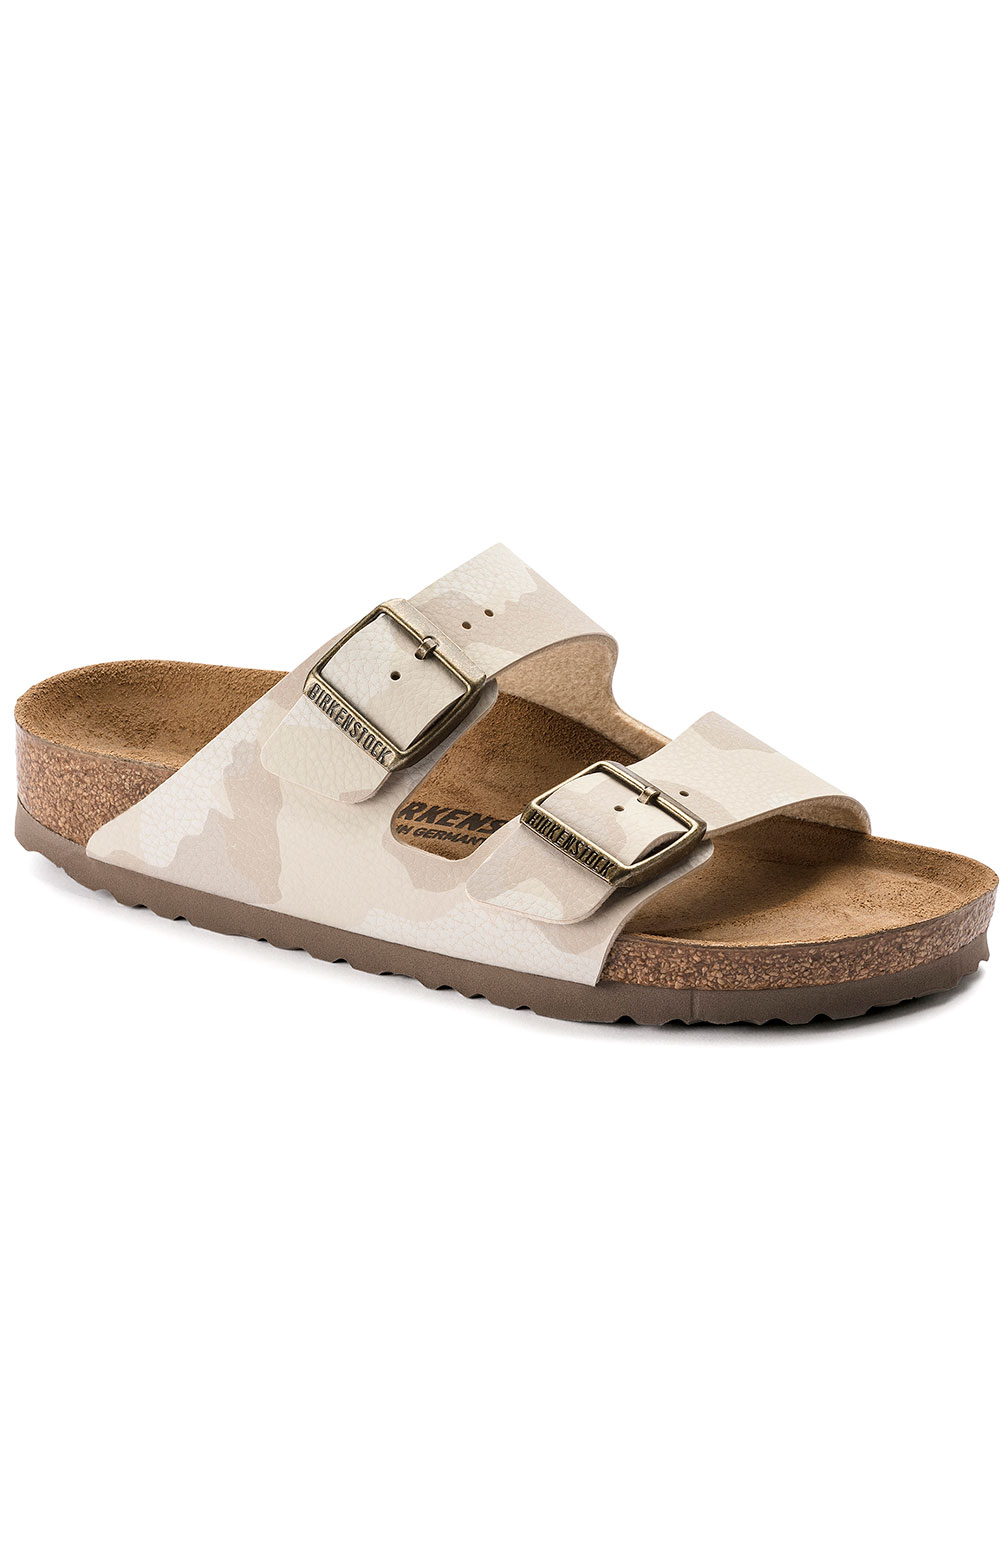 (1016791) Arizona Sandals - Desert Soil Camo Sand 2